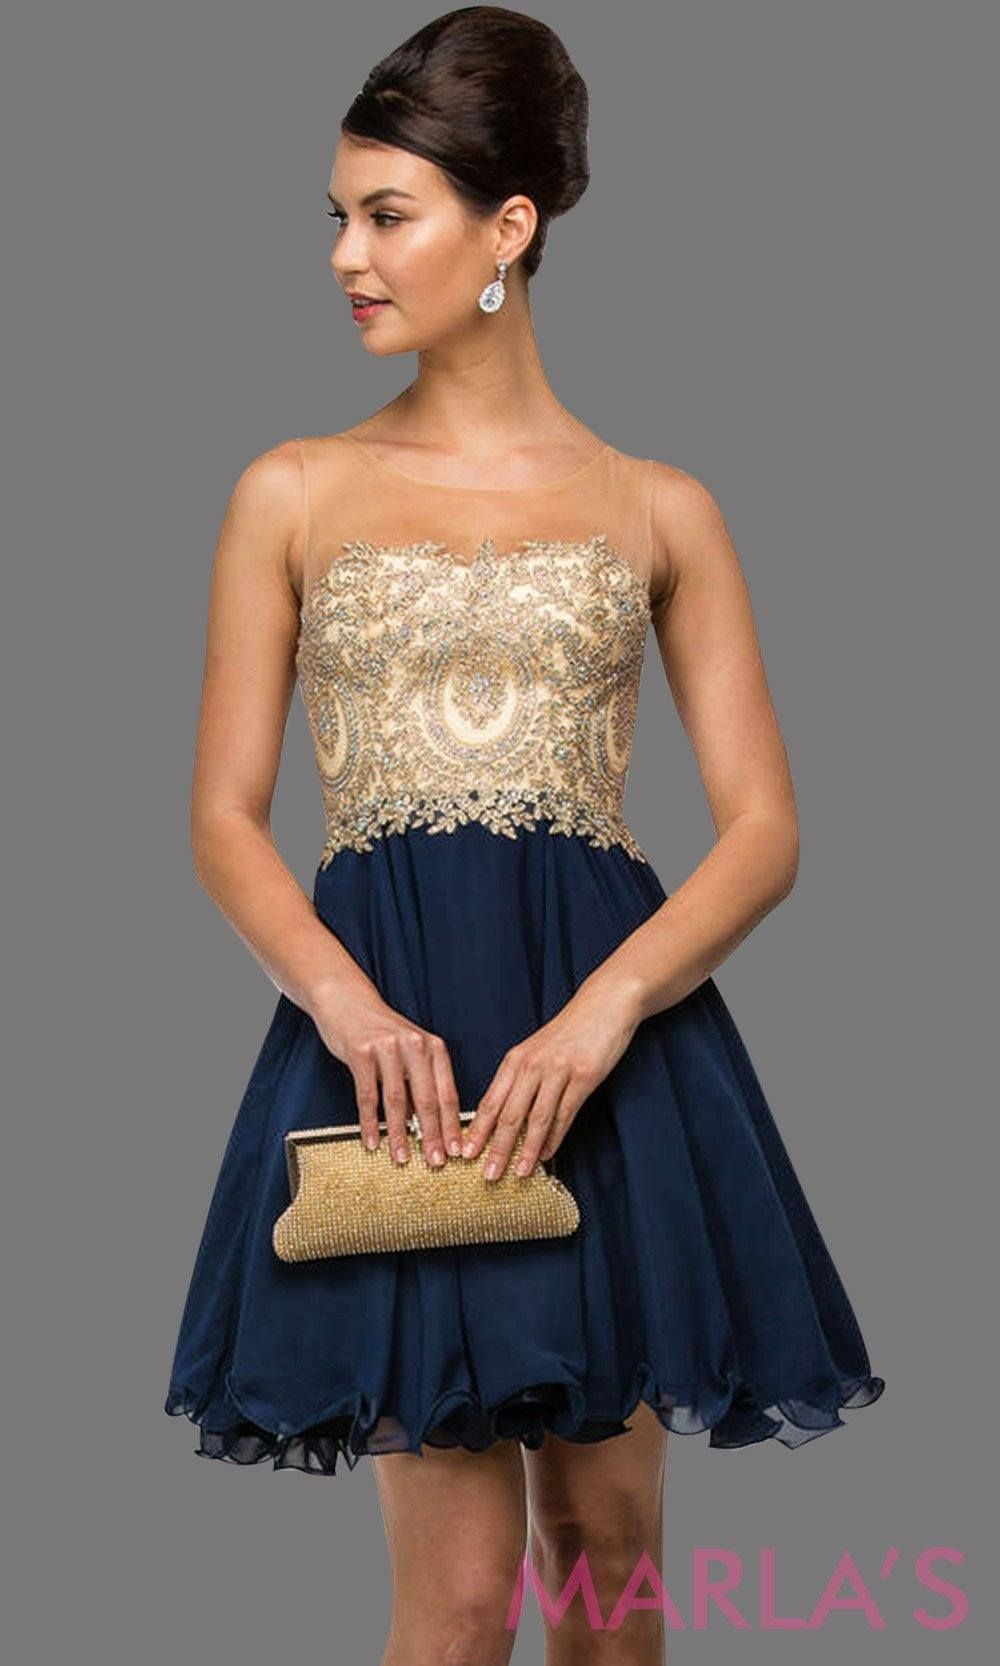 84eb5fbcf11 Short navy graduation dress with illusion beige bodice and flowy blue  chiffon skirt. Perfect for grade 8 grad